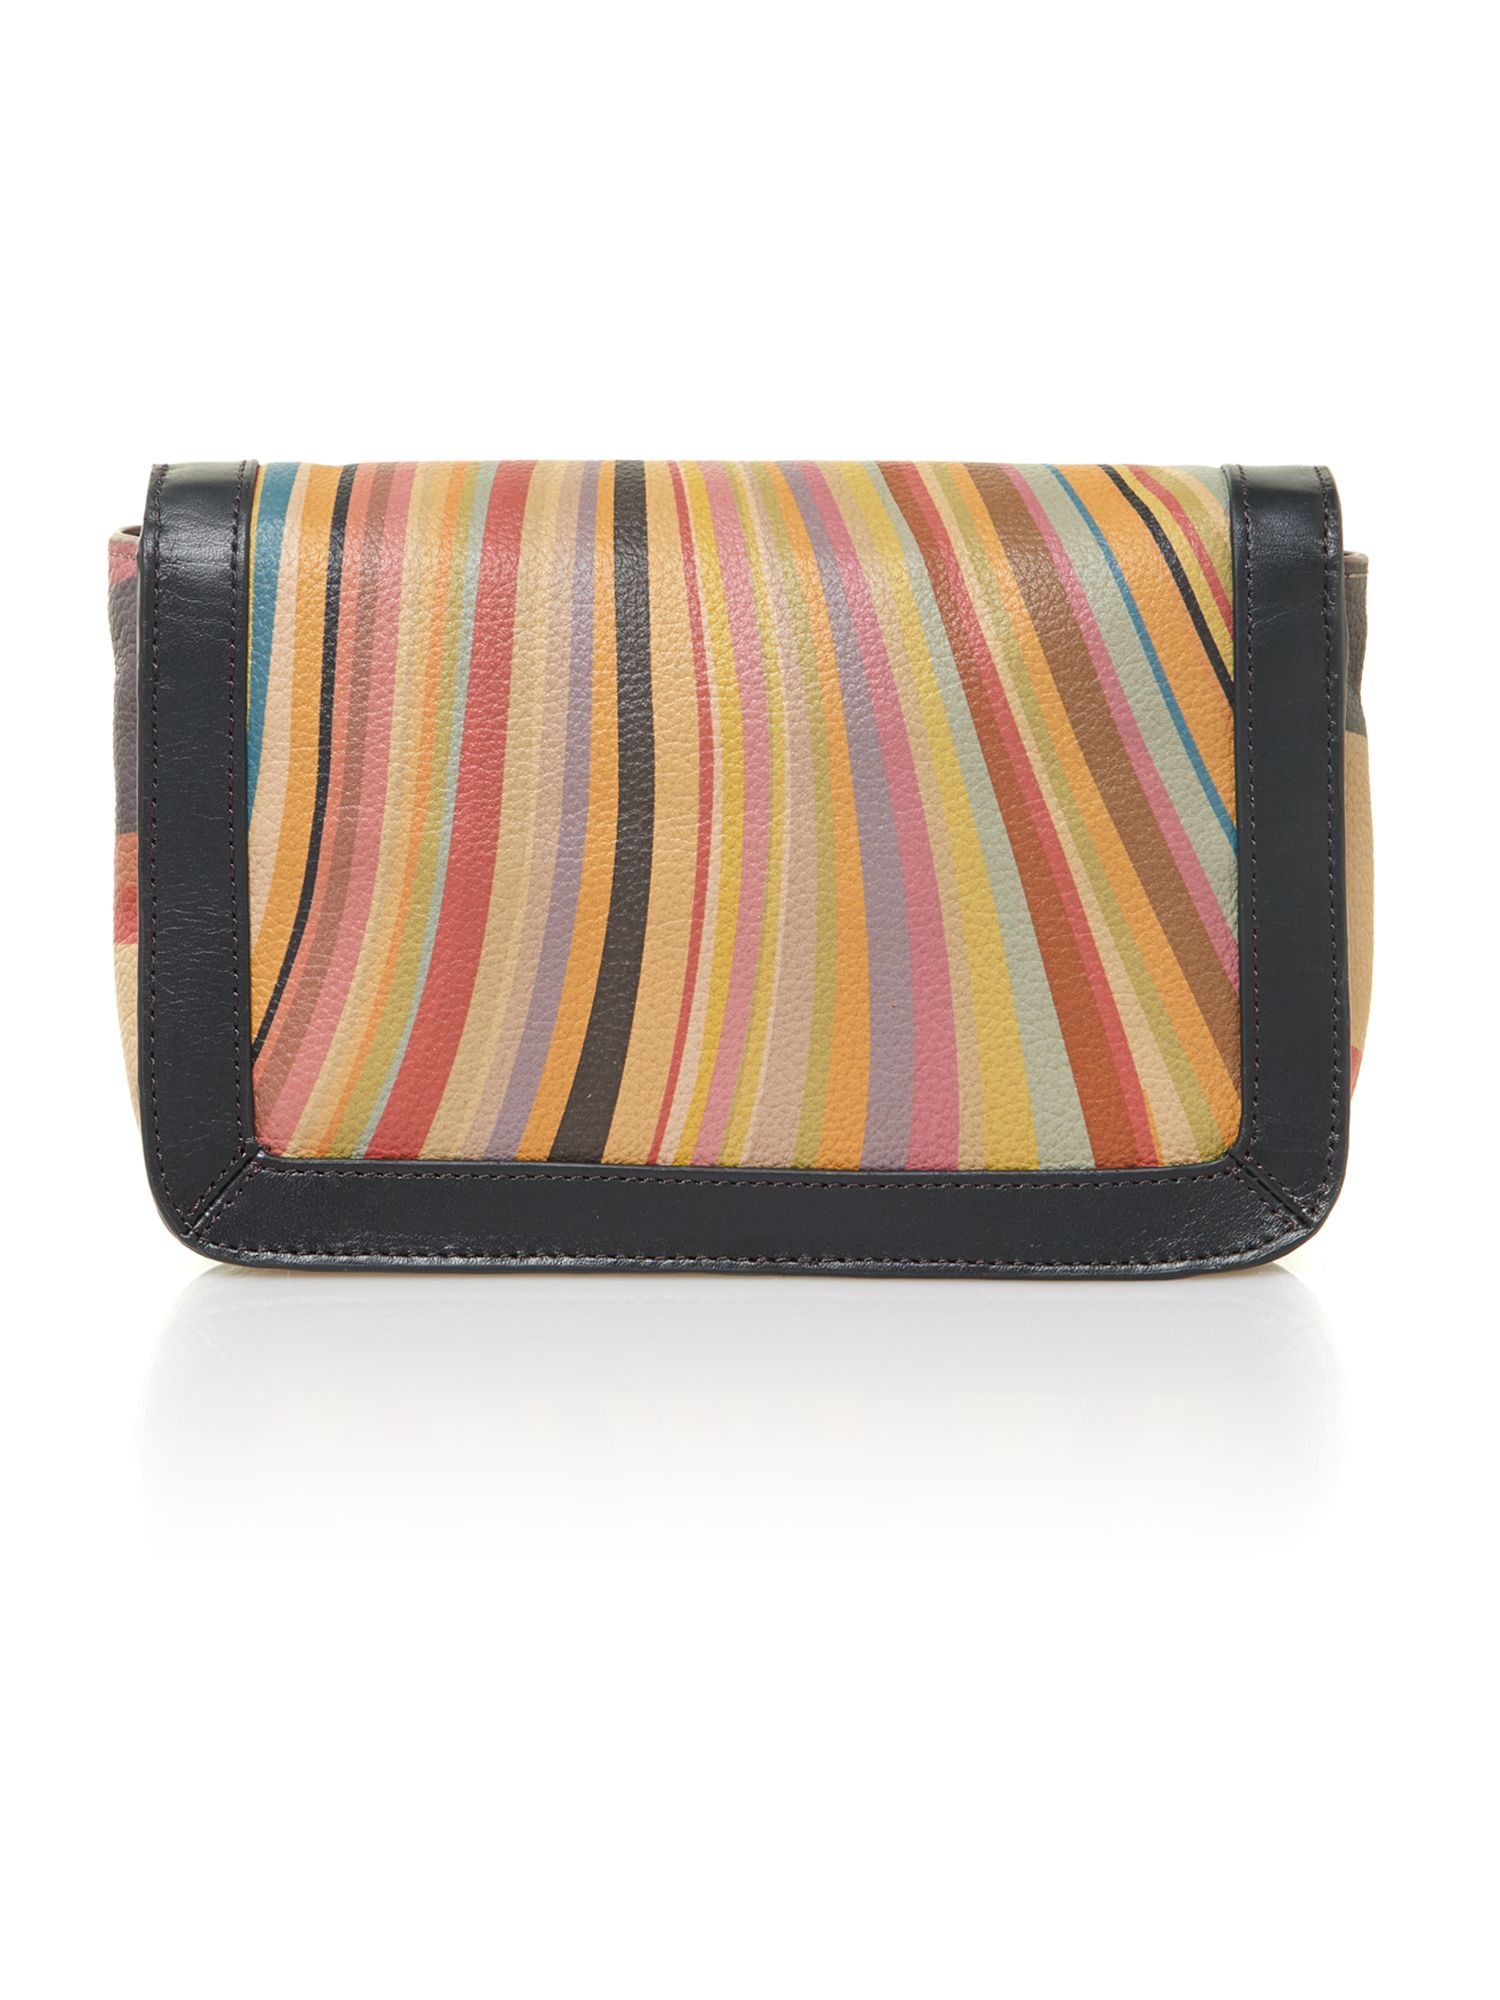 Swirl print small crossbody bag